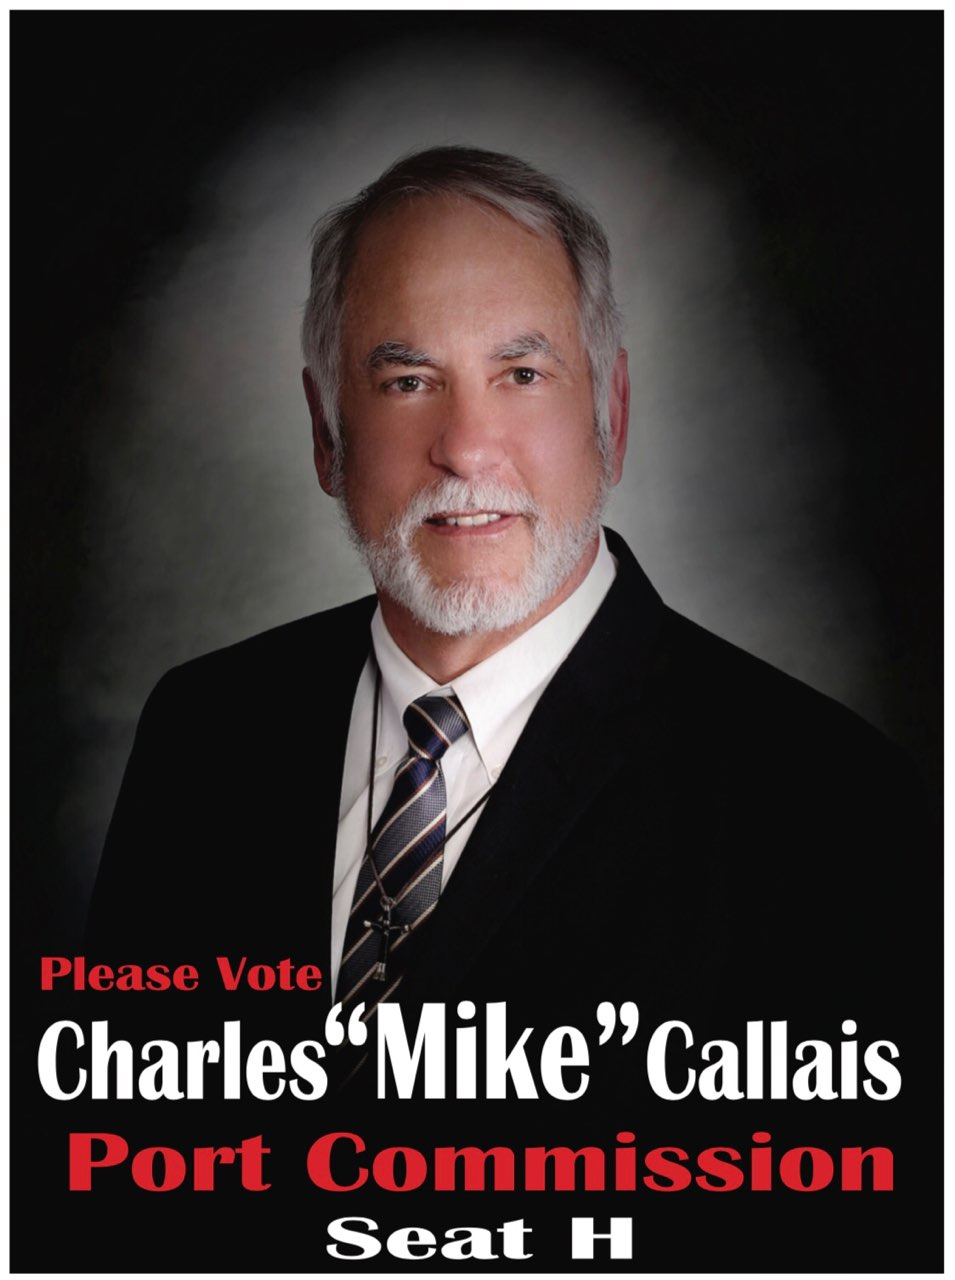 Ad for the Mike Callais campaign.